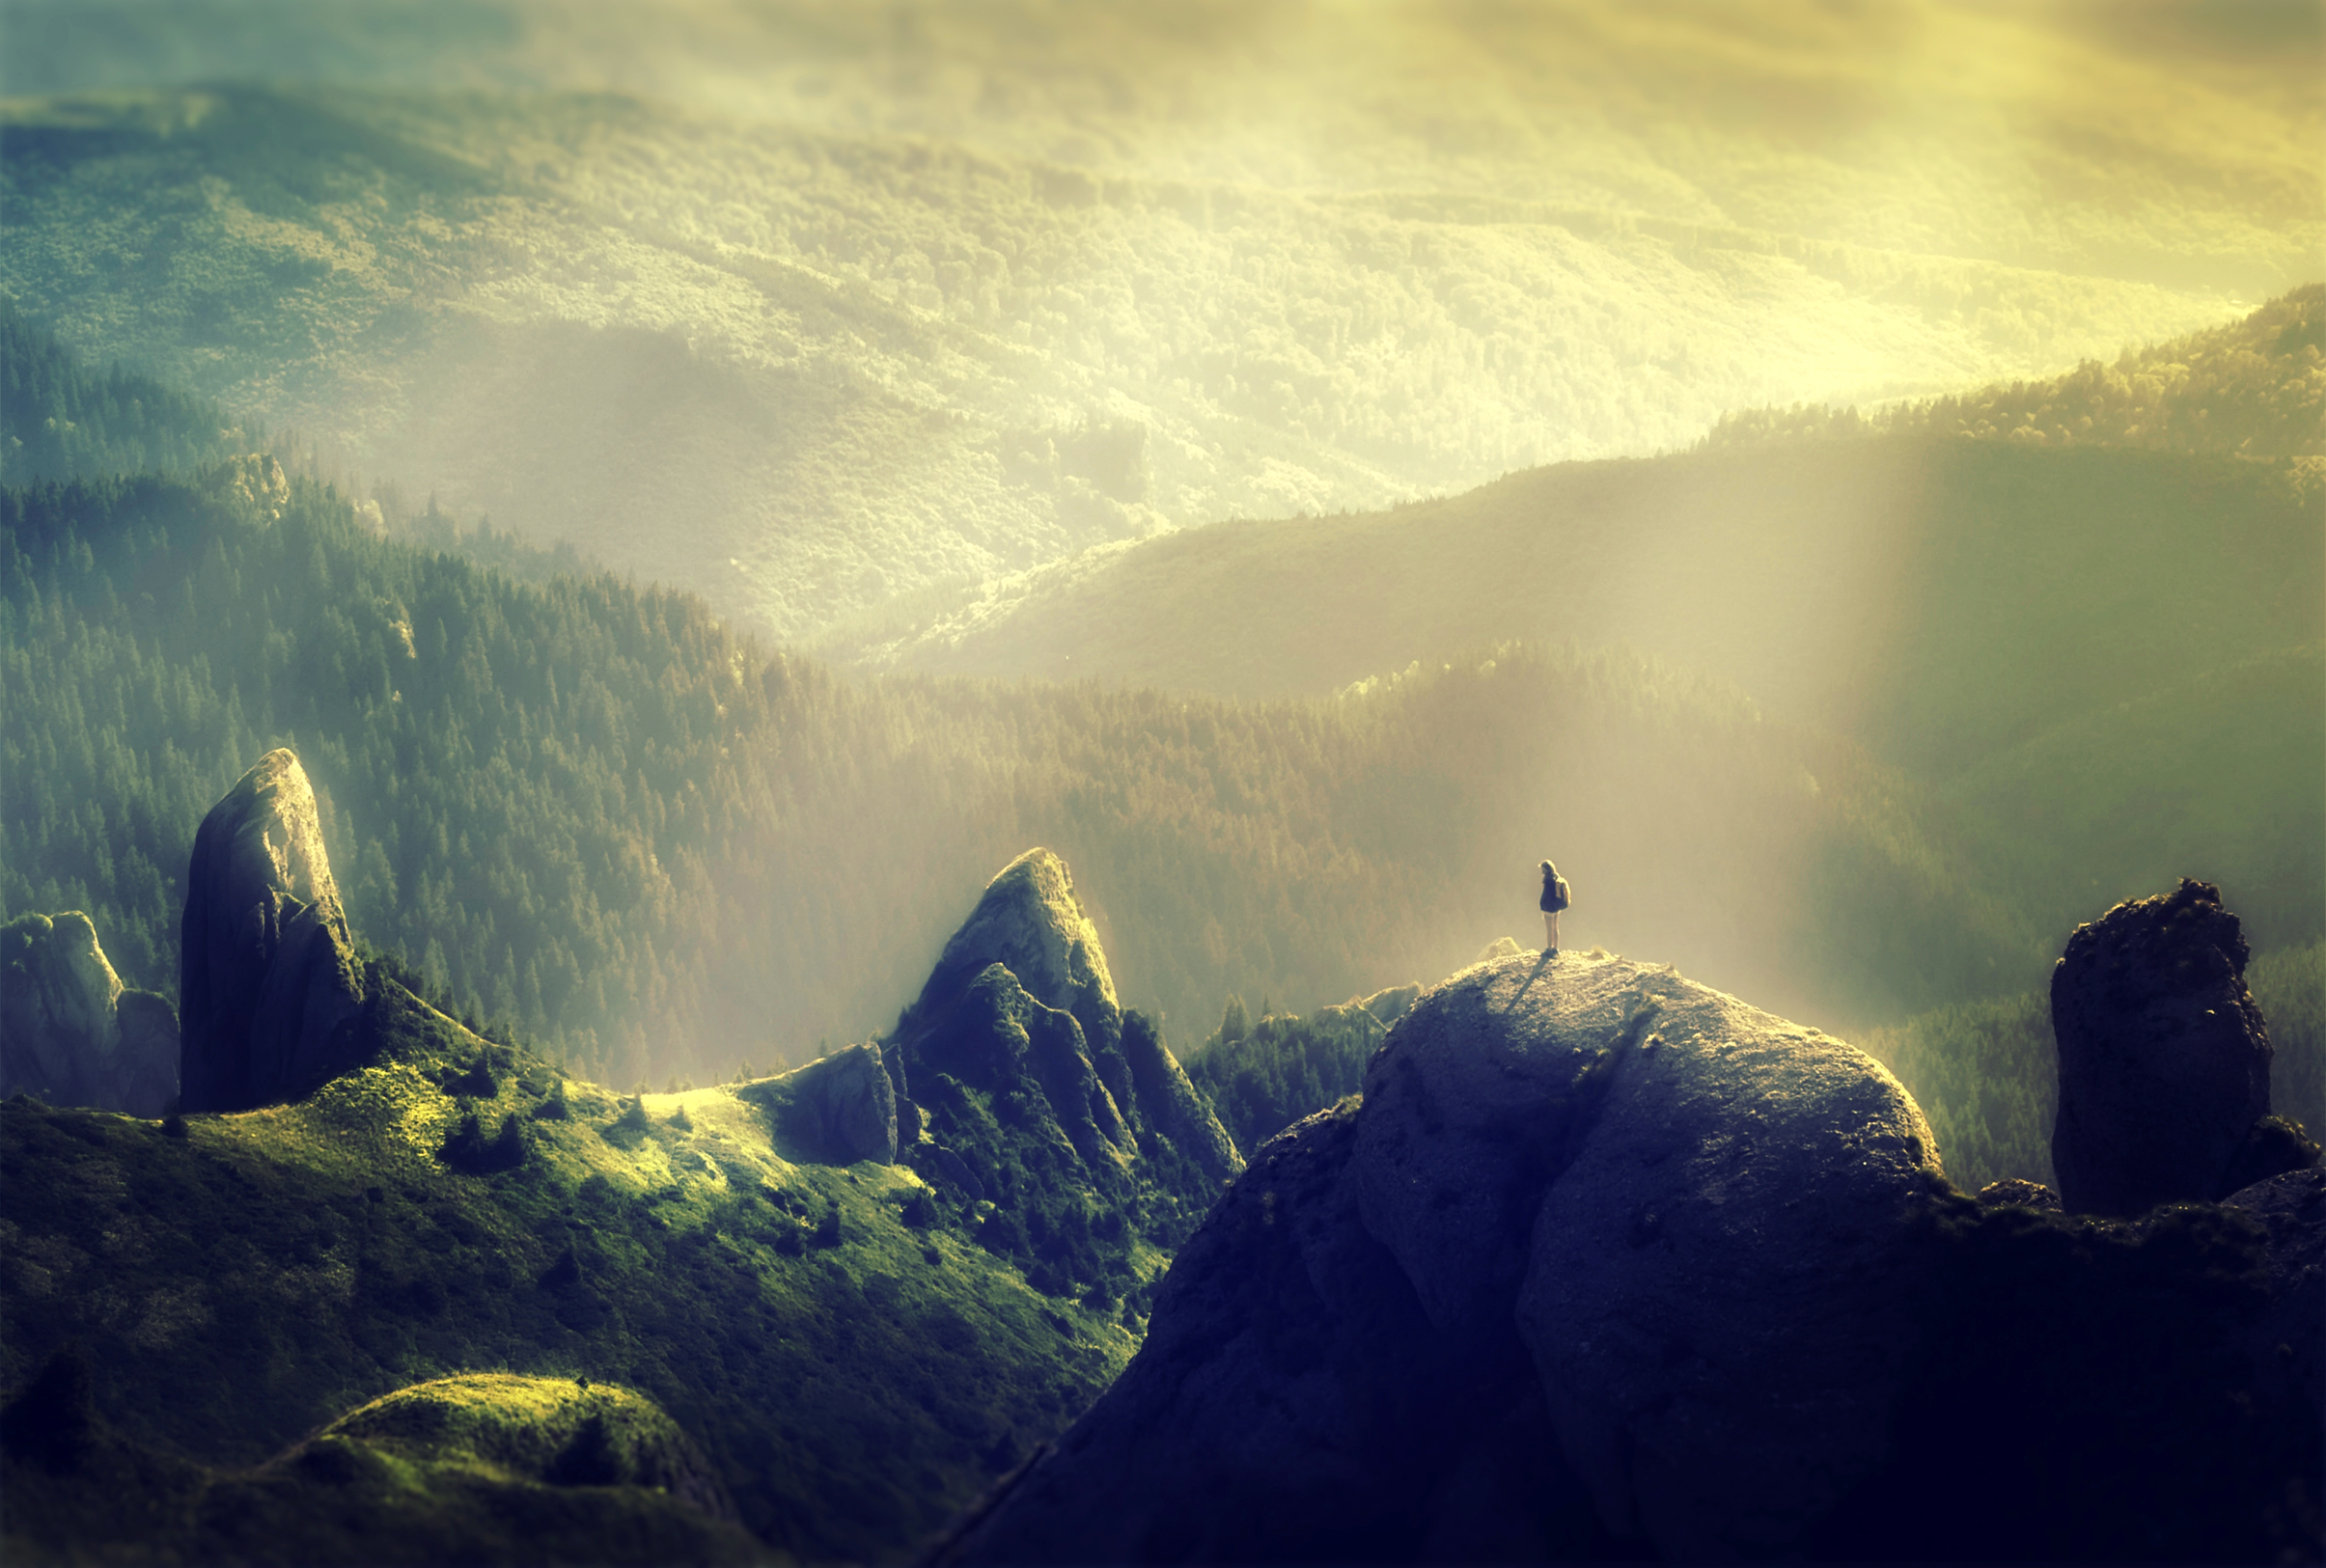 Woman alone at the top of the mountain photo